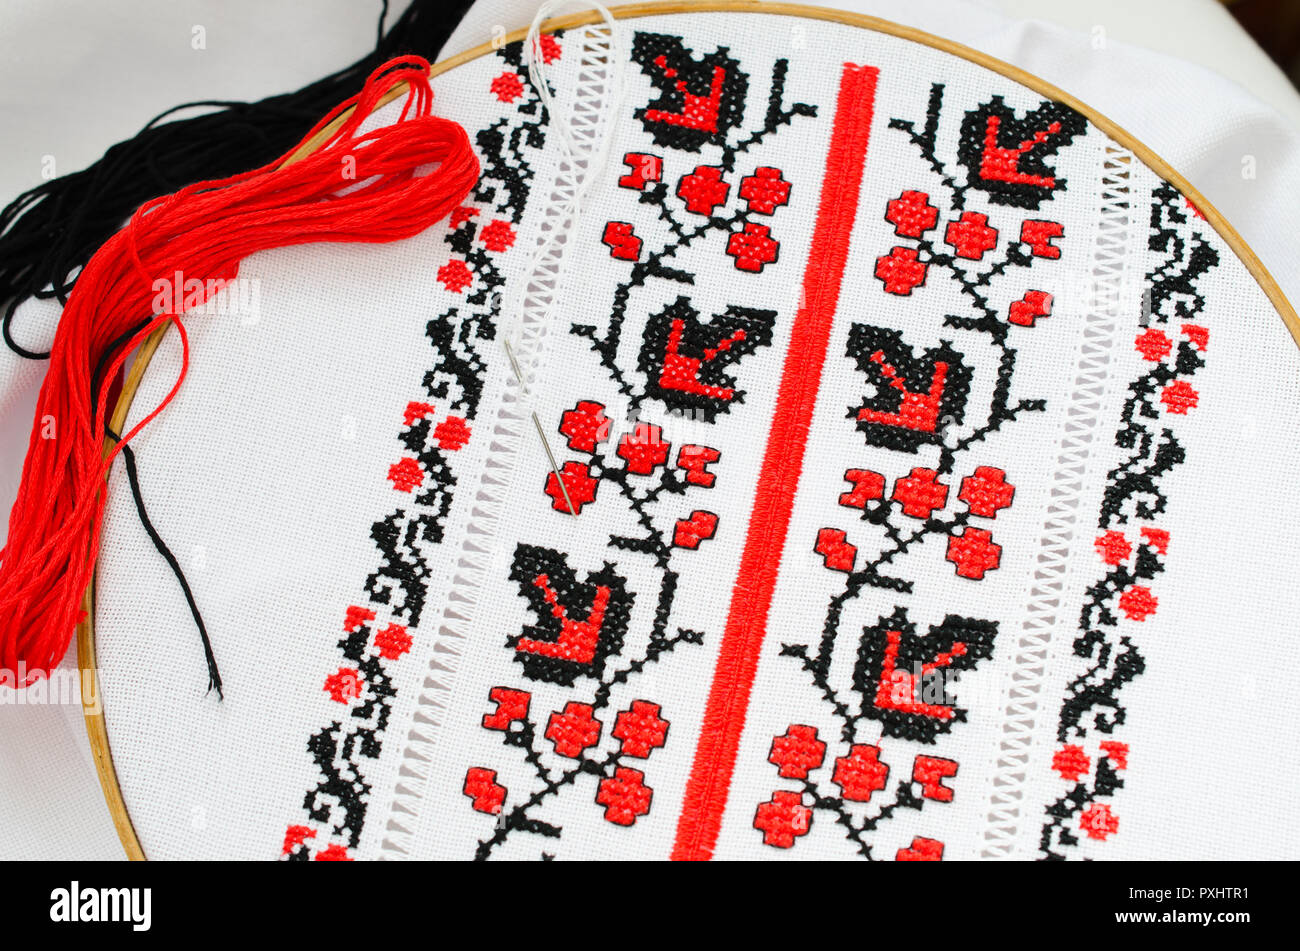 The wooden hoop with the embroidery pattern of red and Black color on canvas. Slavic Embroidery with hemming. - Stock Image